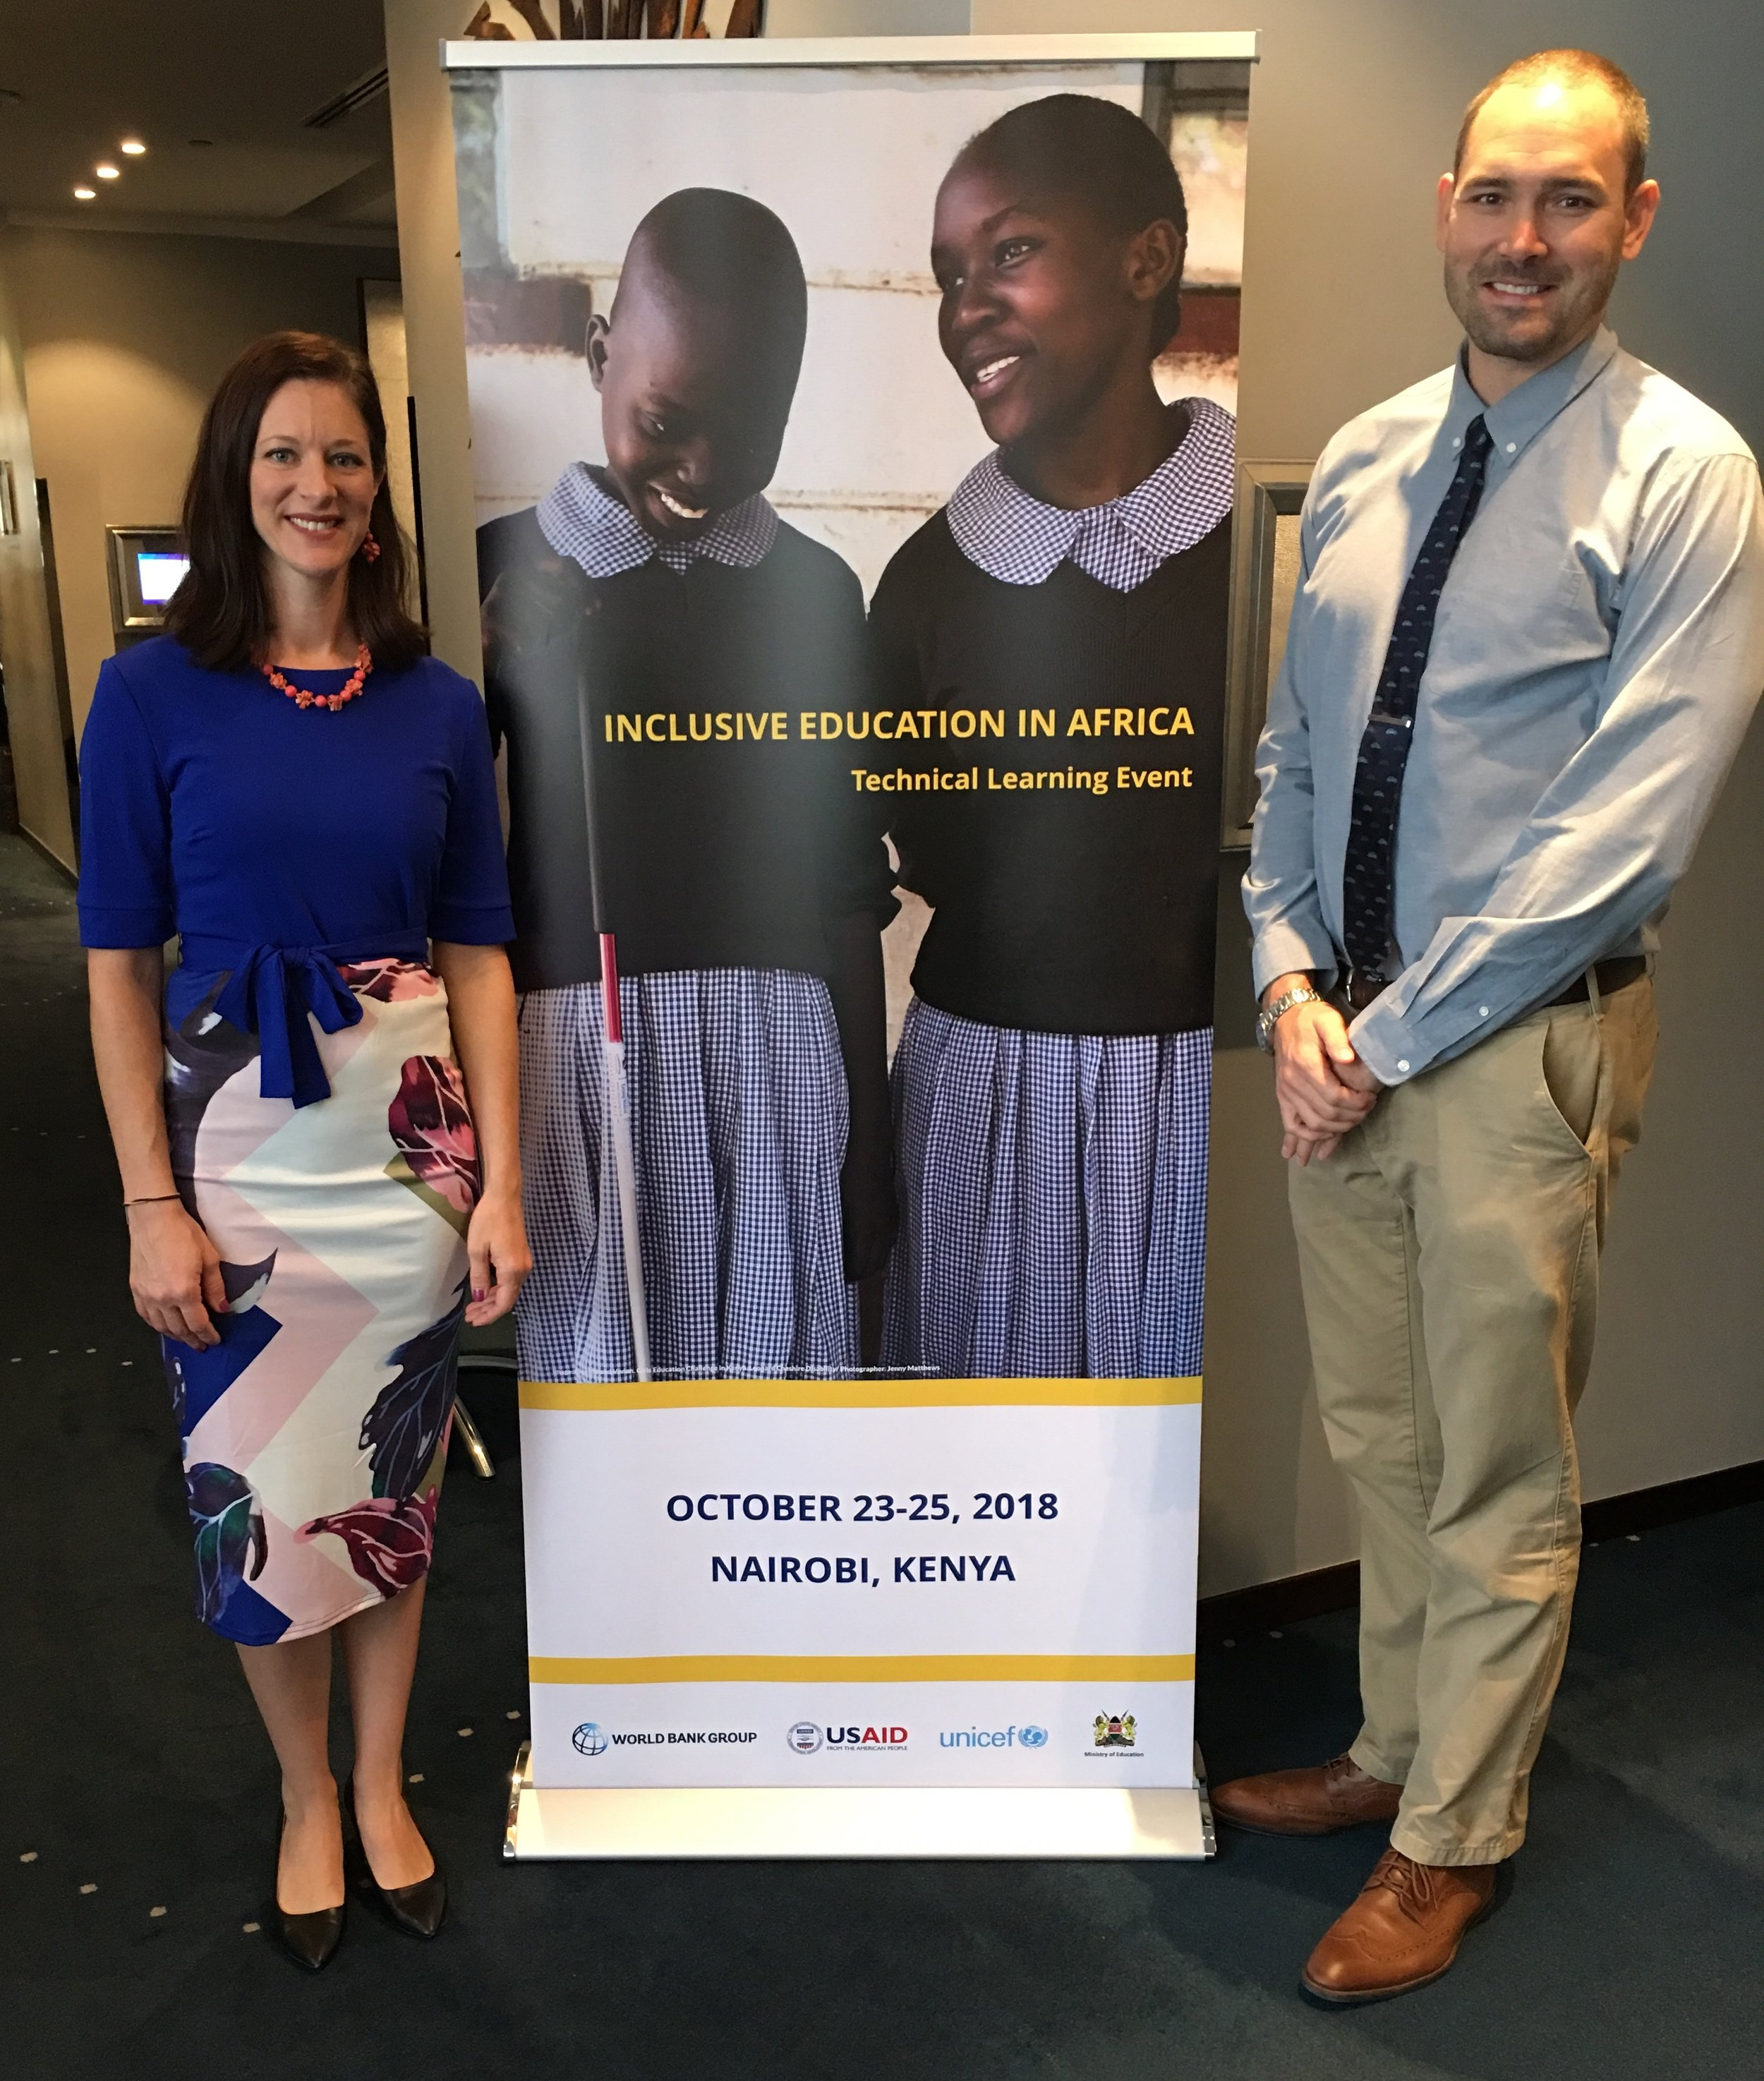 """Leah Maxson of USAID (left) and Brent Elder of Rowan University and Tangata Group (right) standing in front of a poster that reads, """"Inclusive Education in Africa: A Technical Learning Event."""""""